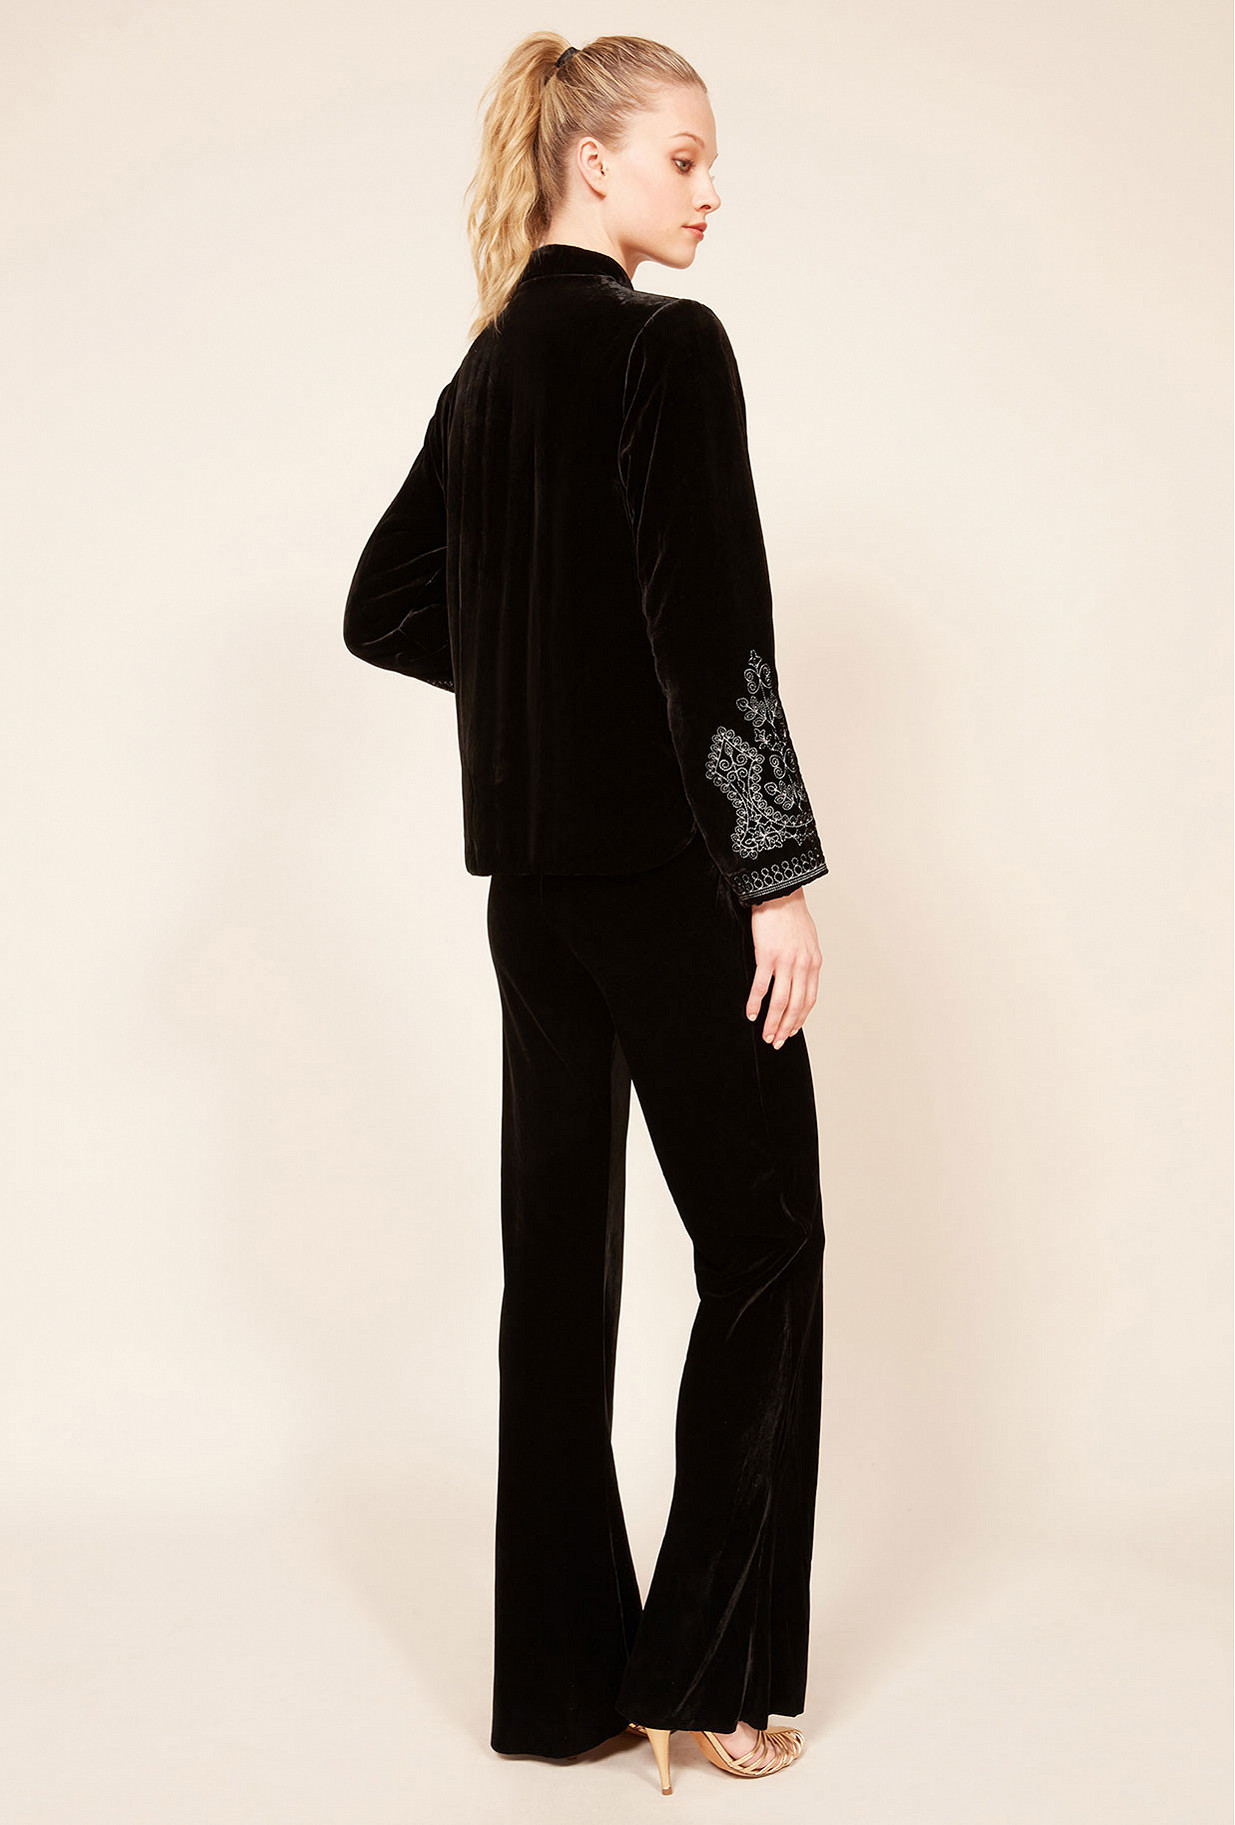 Black  Jacket  March Mes demoiselles fashion clothes designer Paris